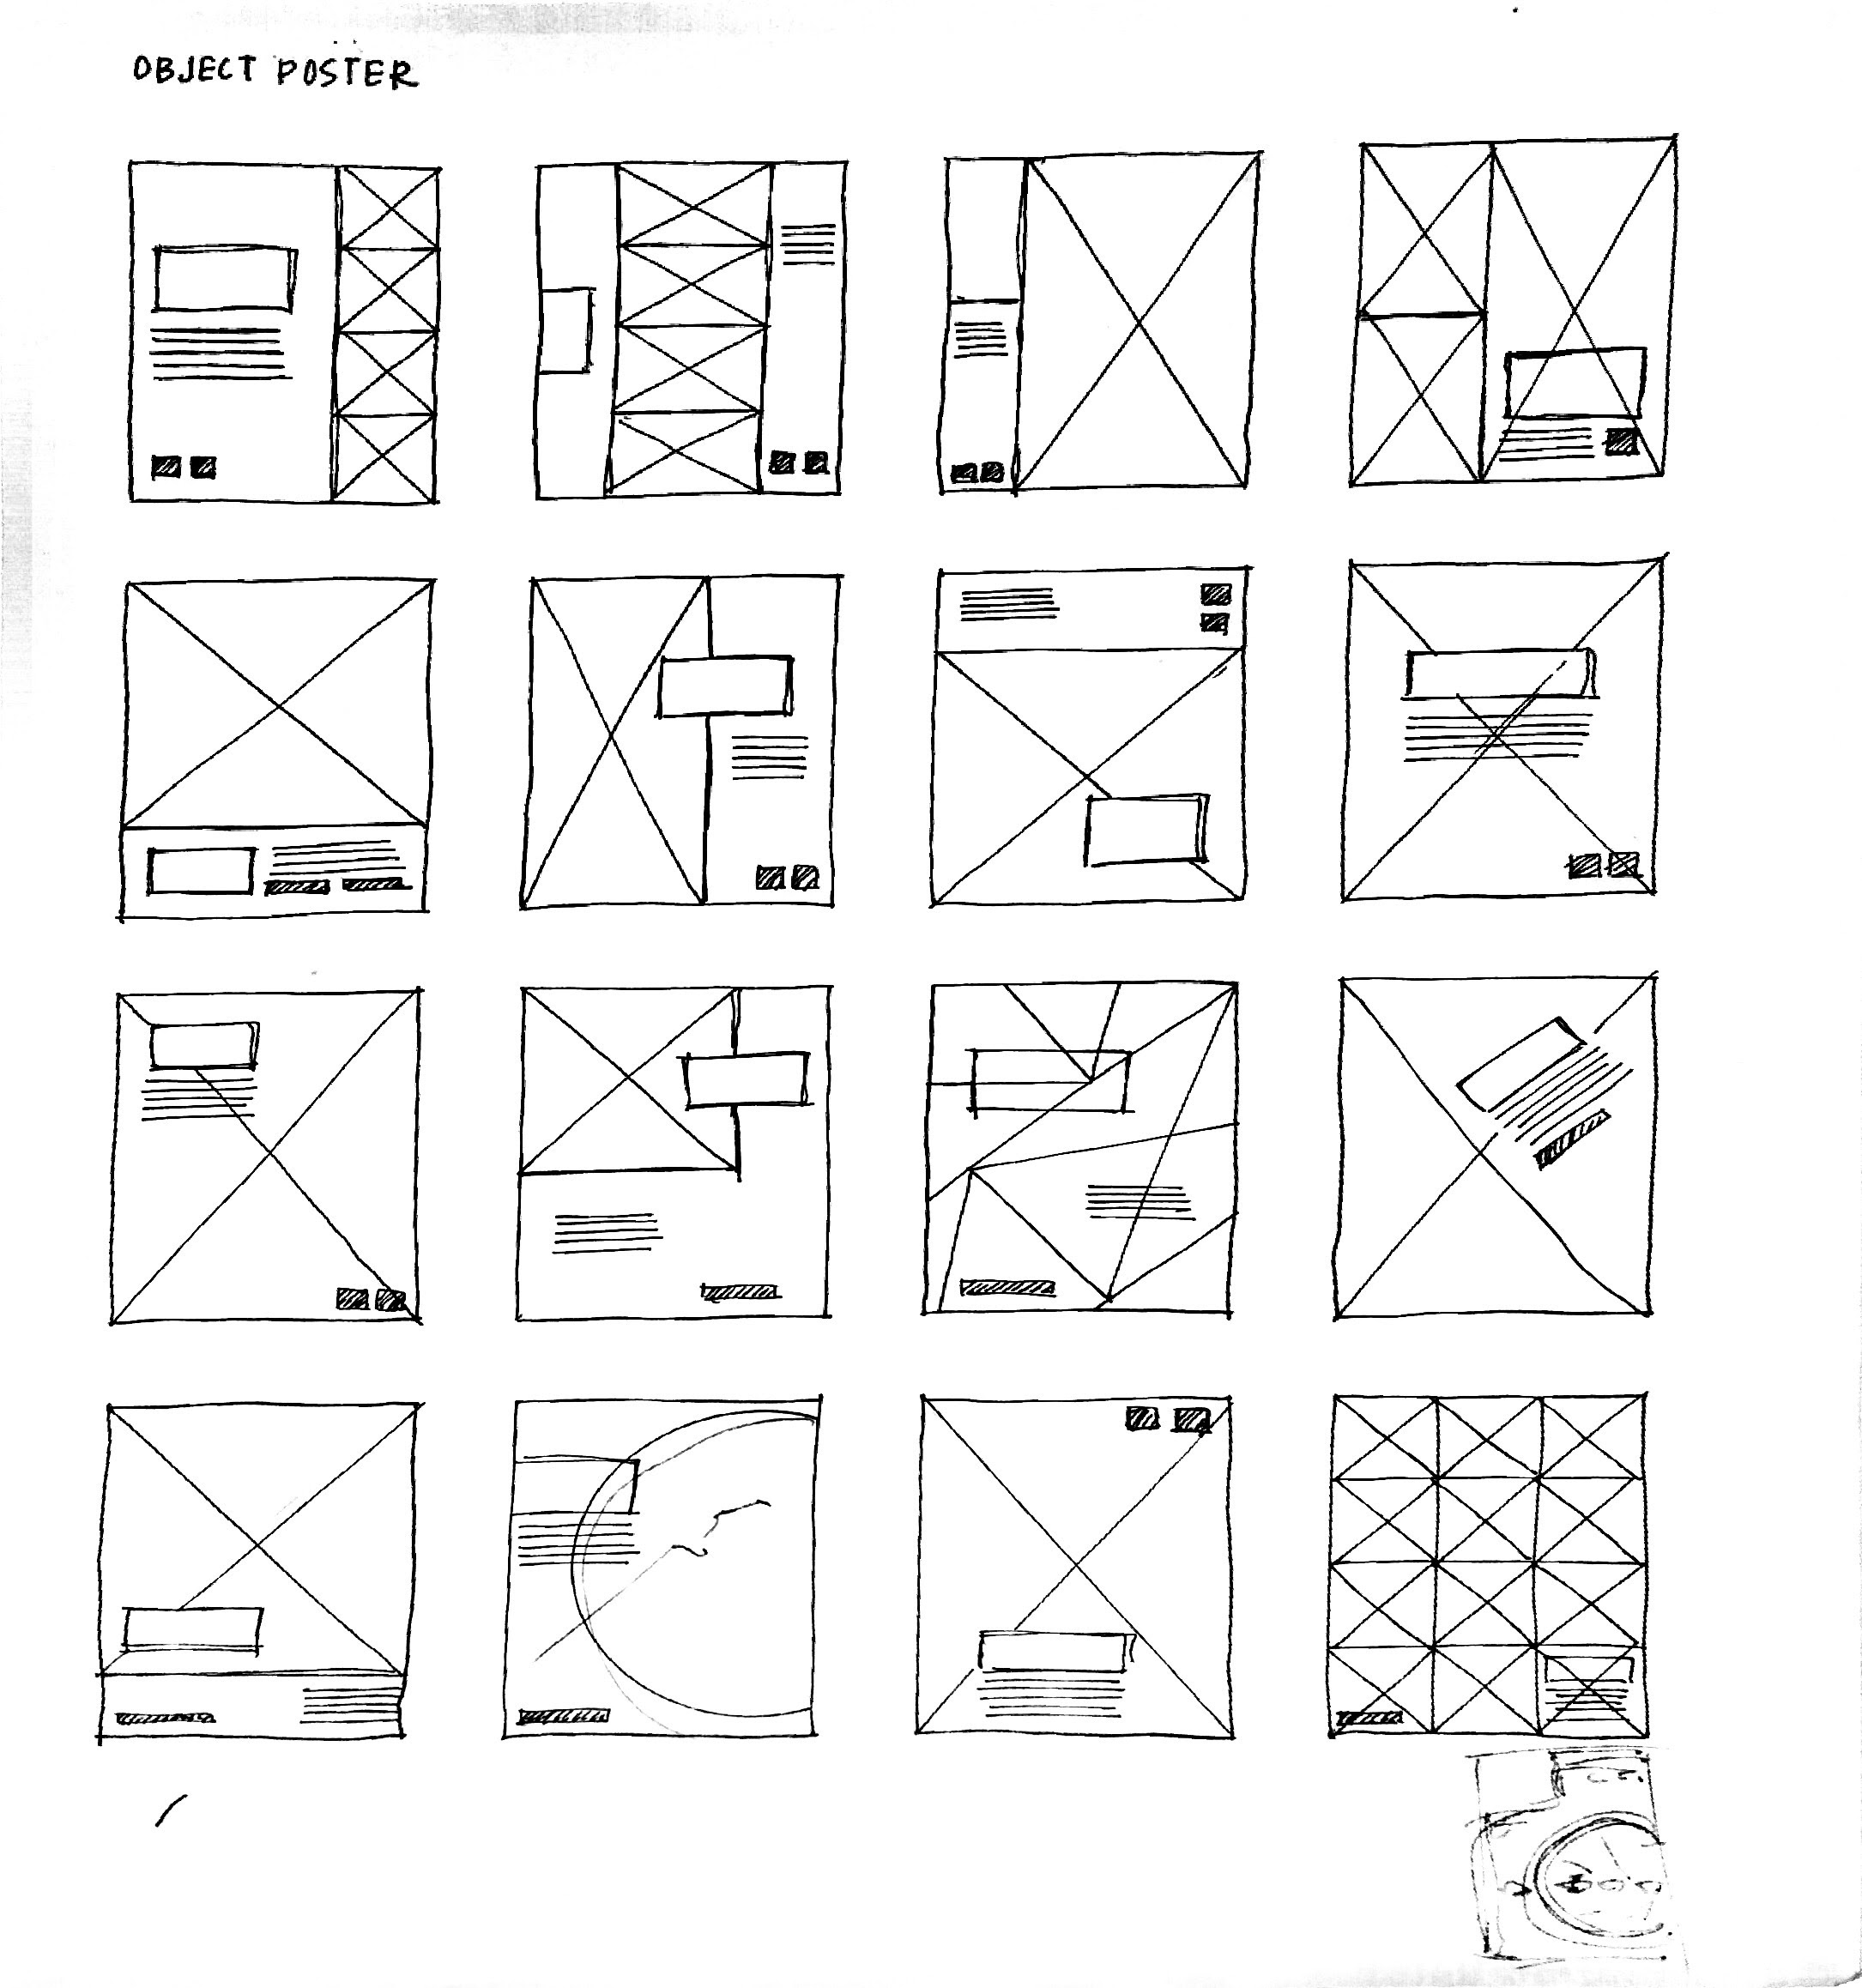 Placement sketches.